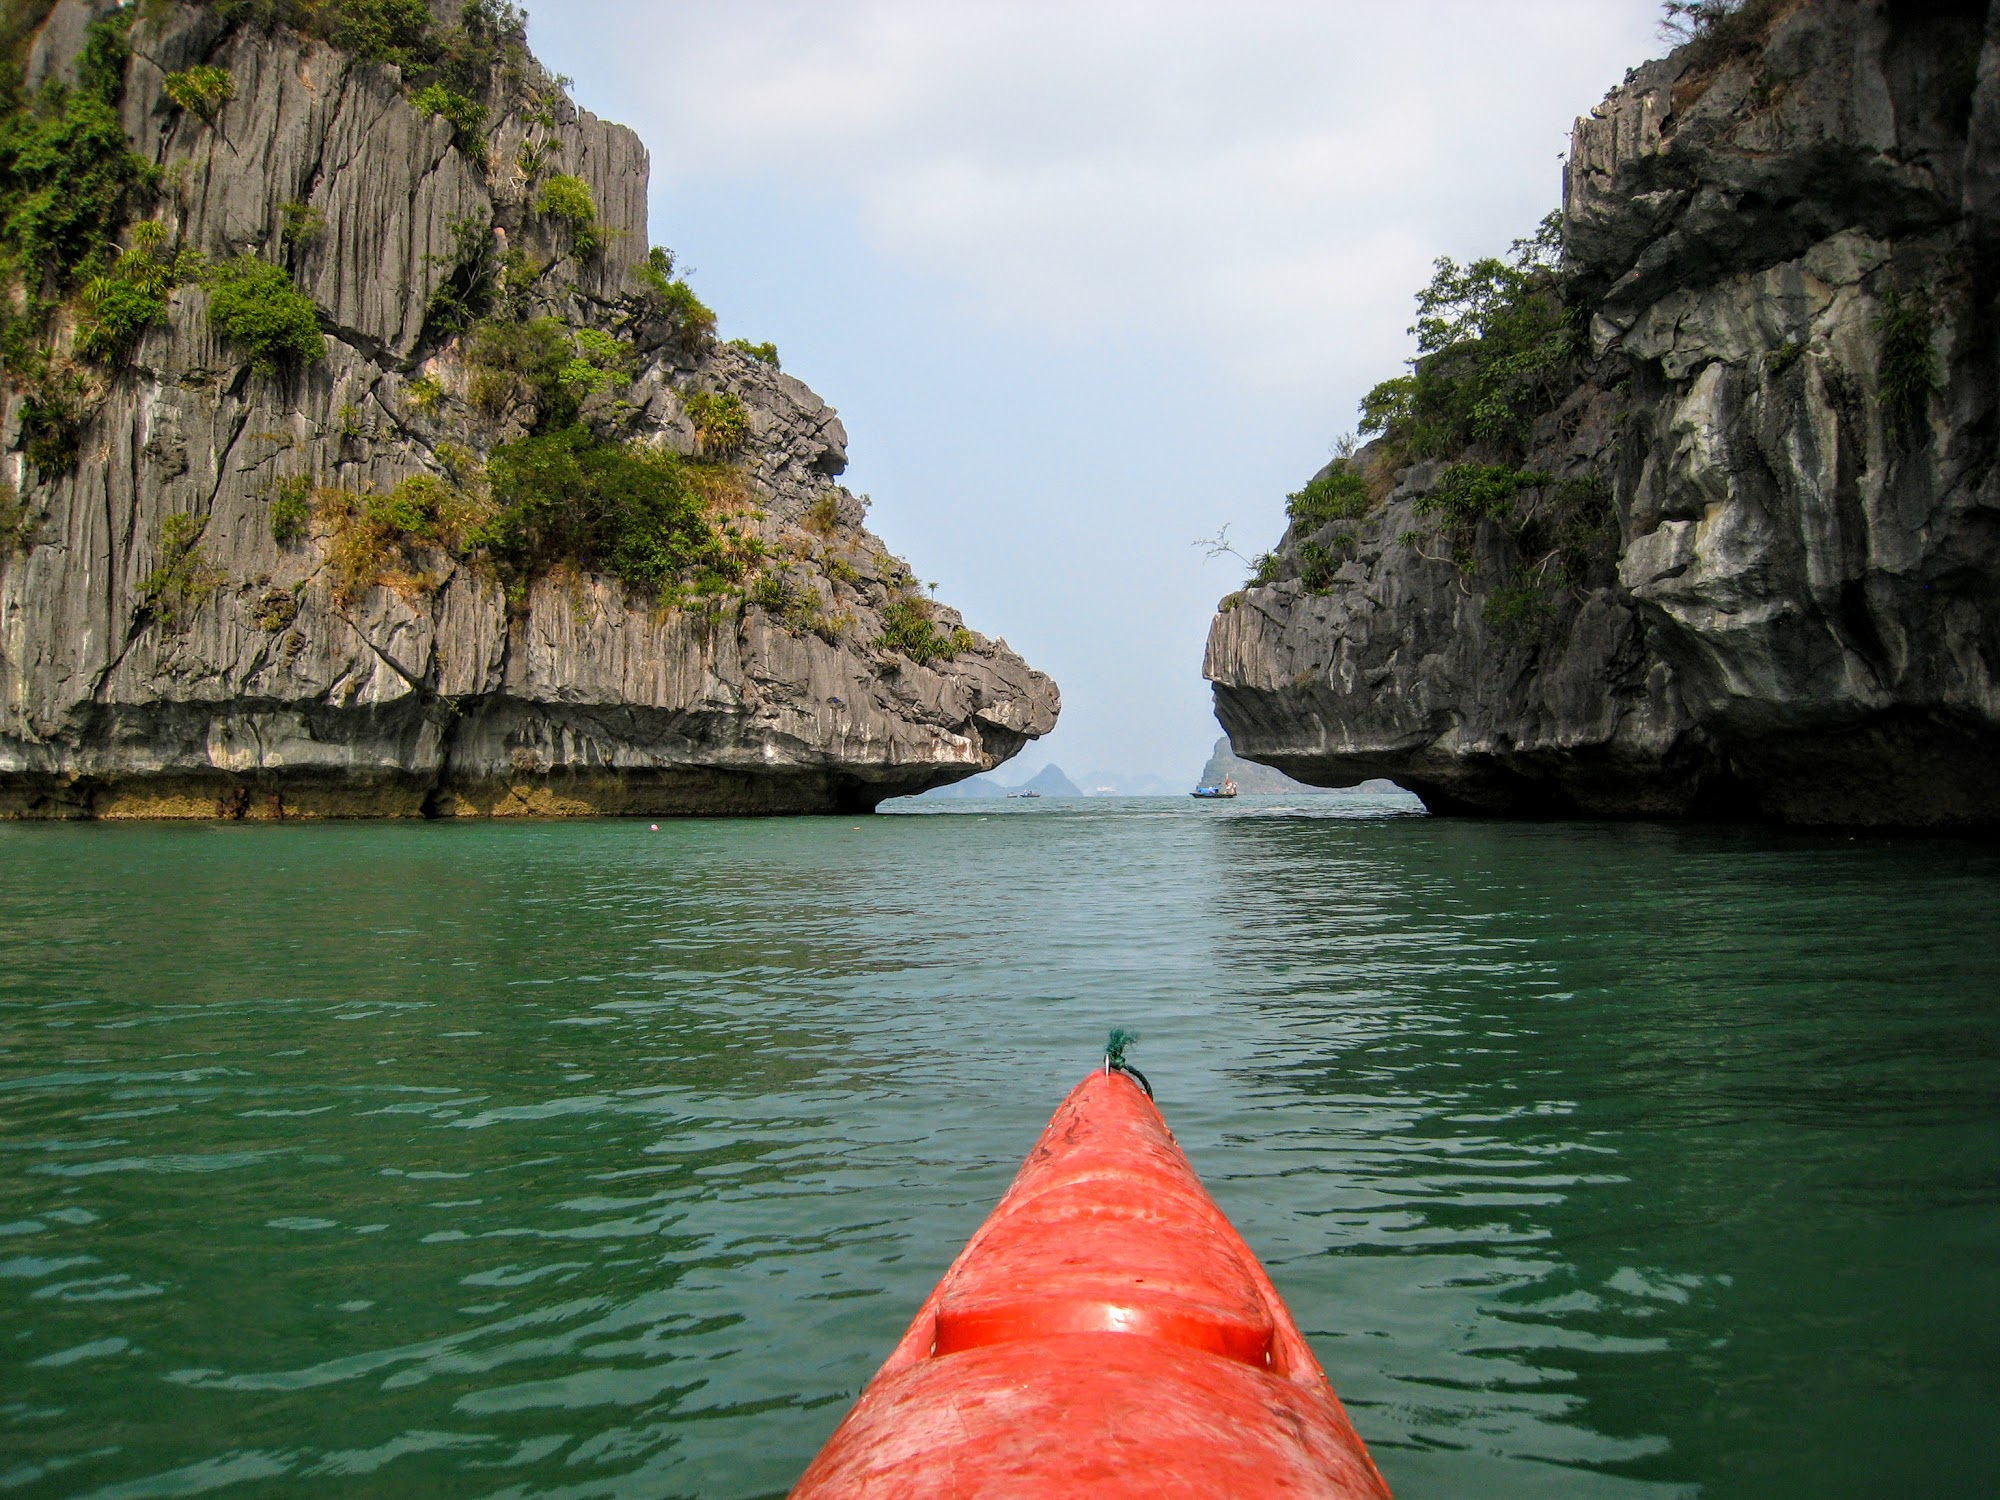 Kayaking in Halong Bay - Vietnam